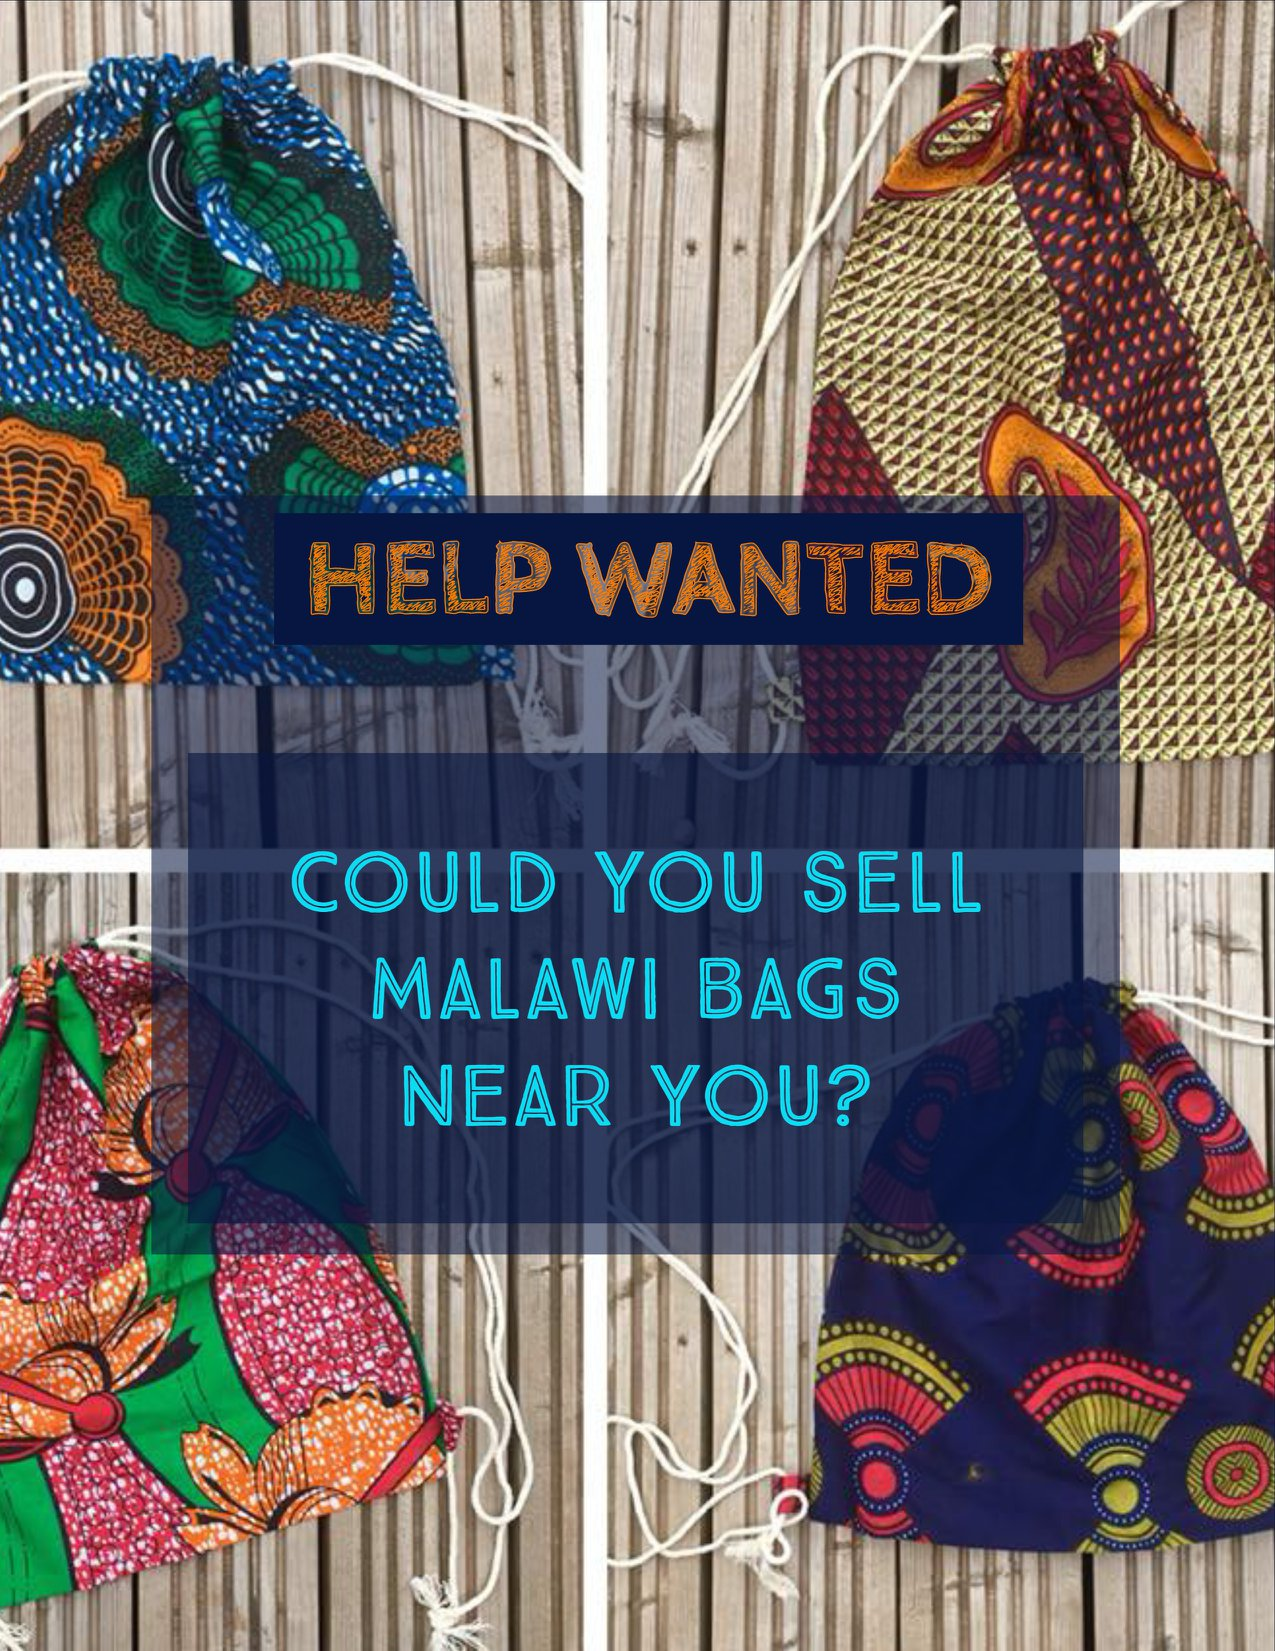 Beautiful handcrafted bags from Malawi - The Mbedza Community Crafts Project began in 2008 as an attempt to provide a source of income for women in and around Mbulukuta village. The ladies produce a bag using local chitenje materials. More recently, we have added other items which include aprons, place mats and a sanitary product for girls. This project also provides work for a craftsmen who makes the carved animals that adorn the bags to provide women in the area around Mbulukuta village. The ladies use this income to pay for school fees for their sons and daughters, medicine, food and other essentials. Ruth (pictued below with a sewing machine on her head) saved her earnings to buy an Esperanza stove. Seeing this gave us the idea for the stove project.